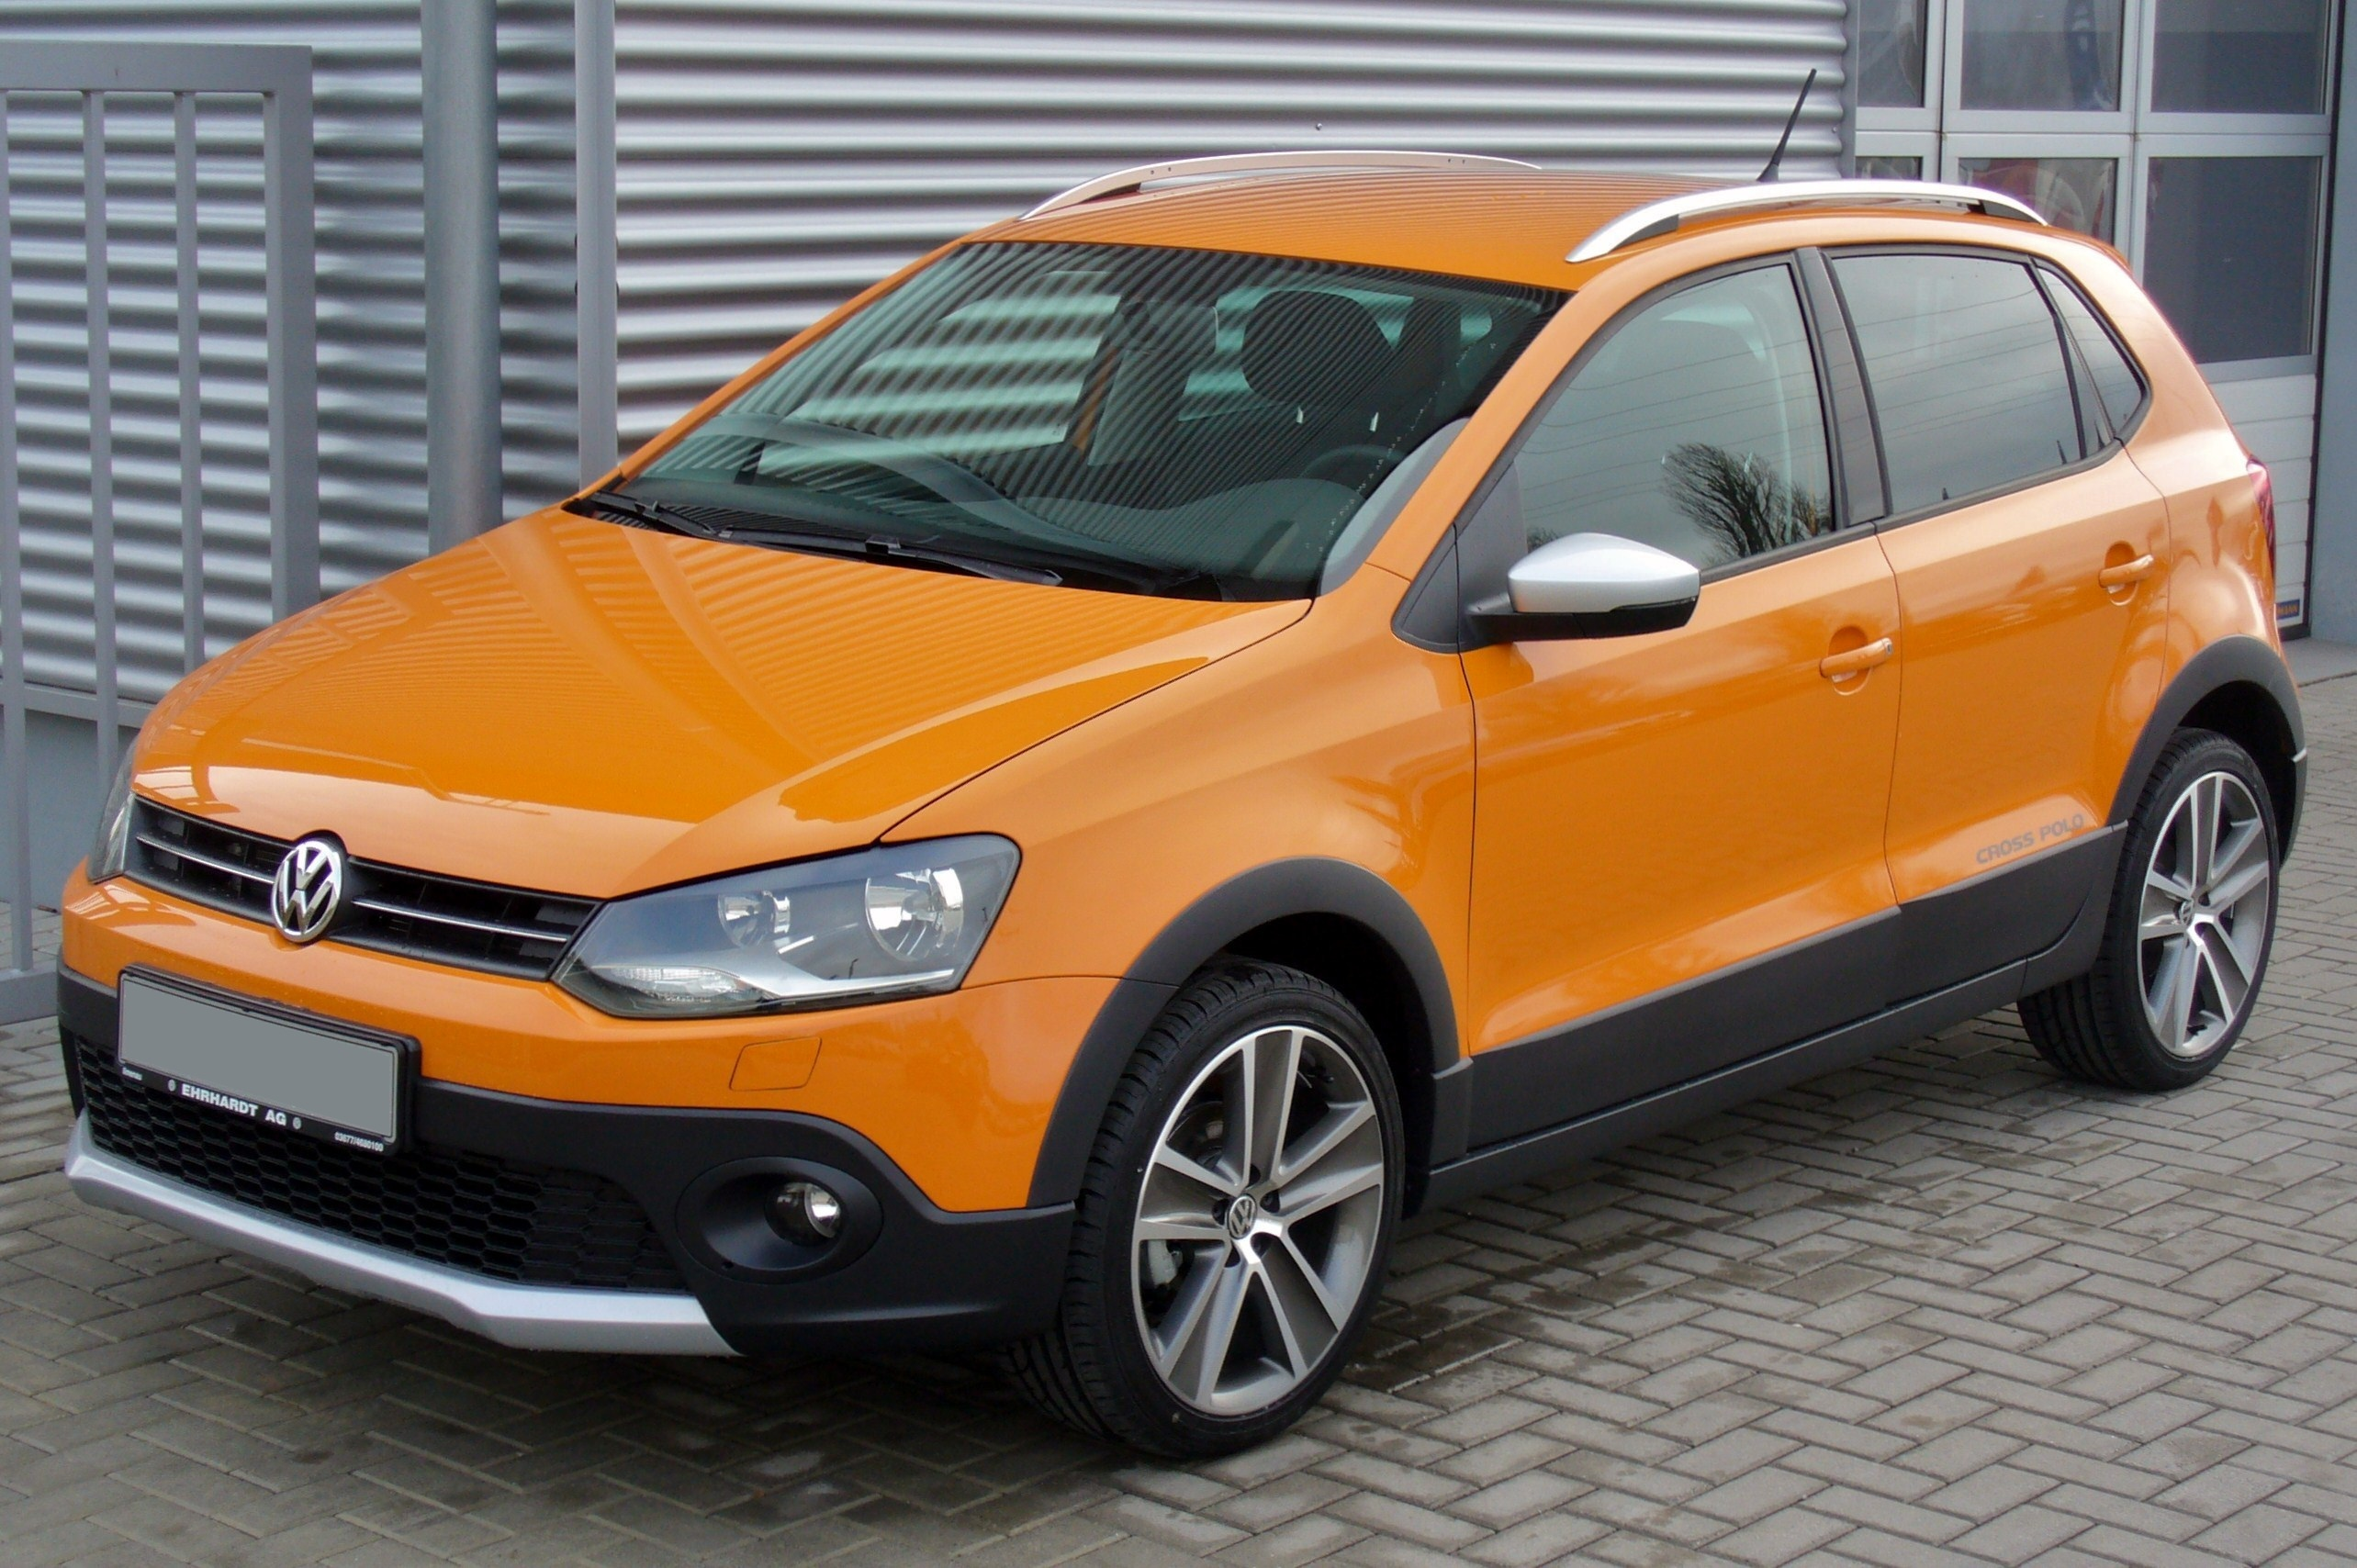 file vw crosspolo 1 2 tsi magmaorange jpg wikimedia commons. Black Bedroom Furniture Sets. Home Design Ideas